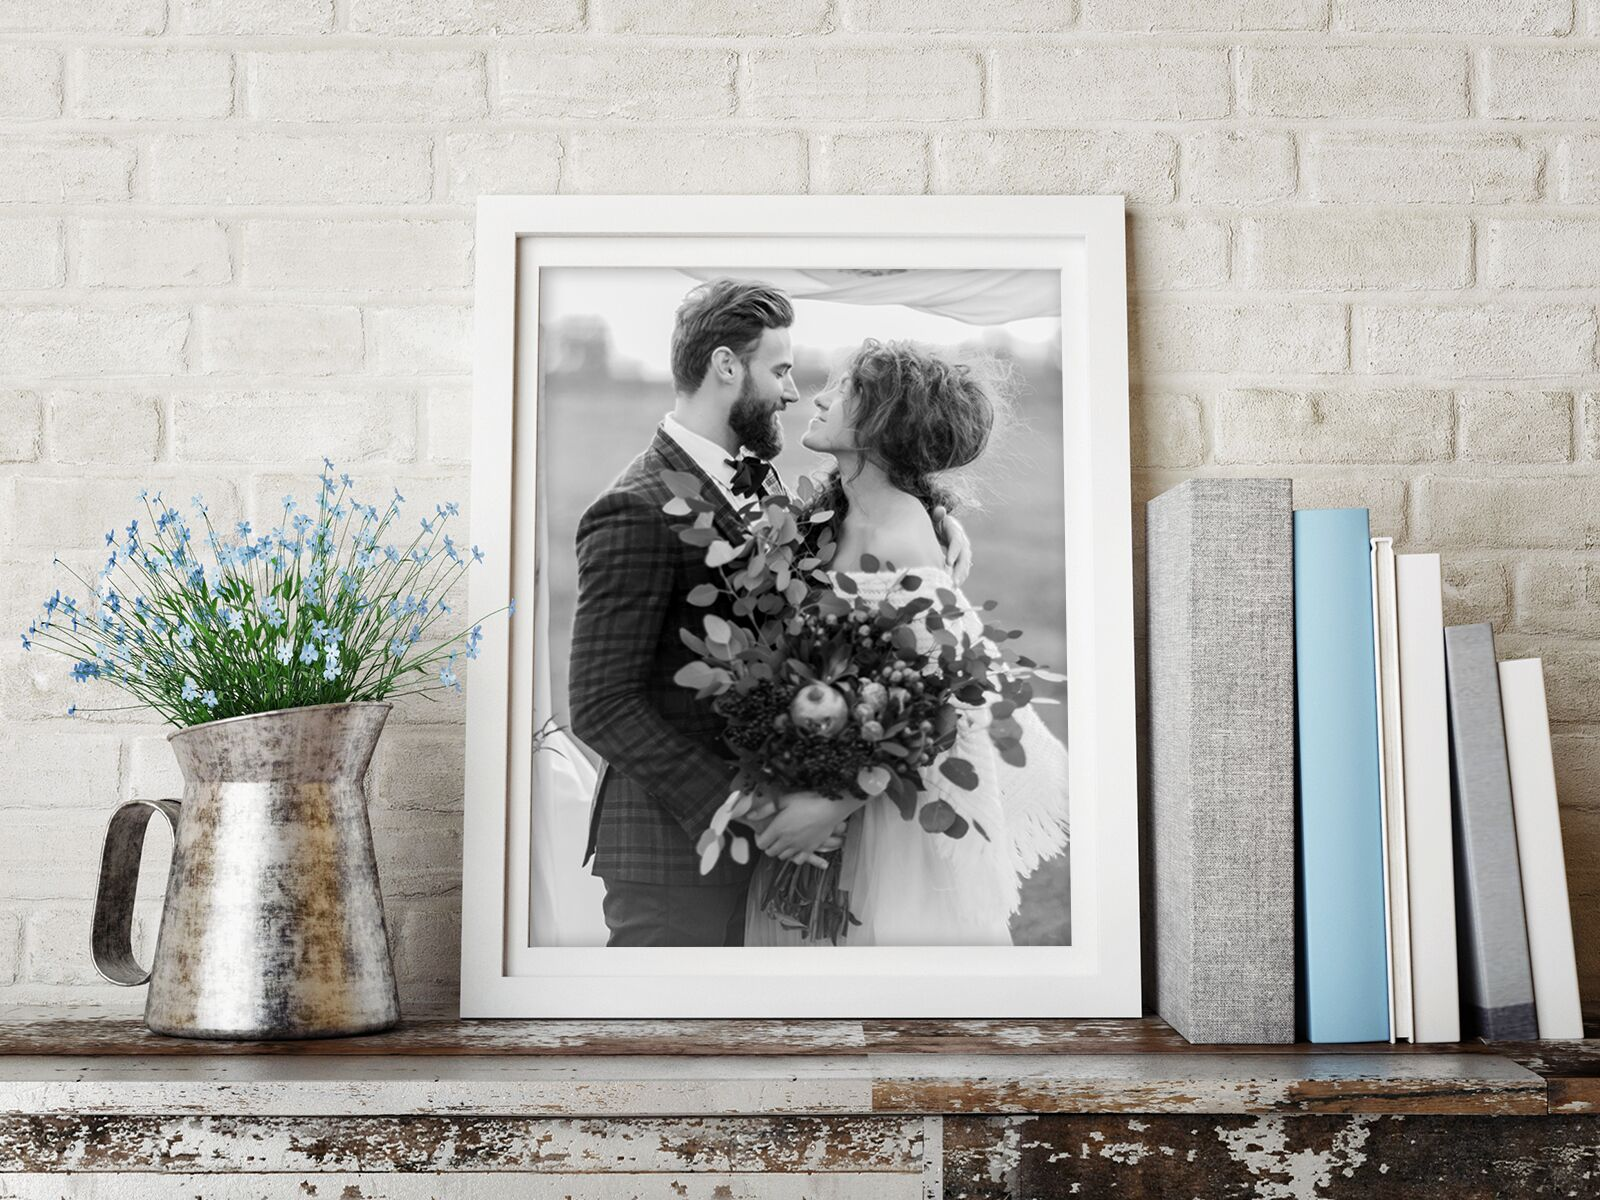 Parents Gift Wedding: Thank-You Gift Ideas For Parents Of The Bride And Groom